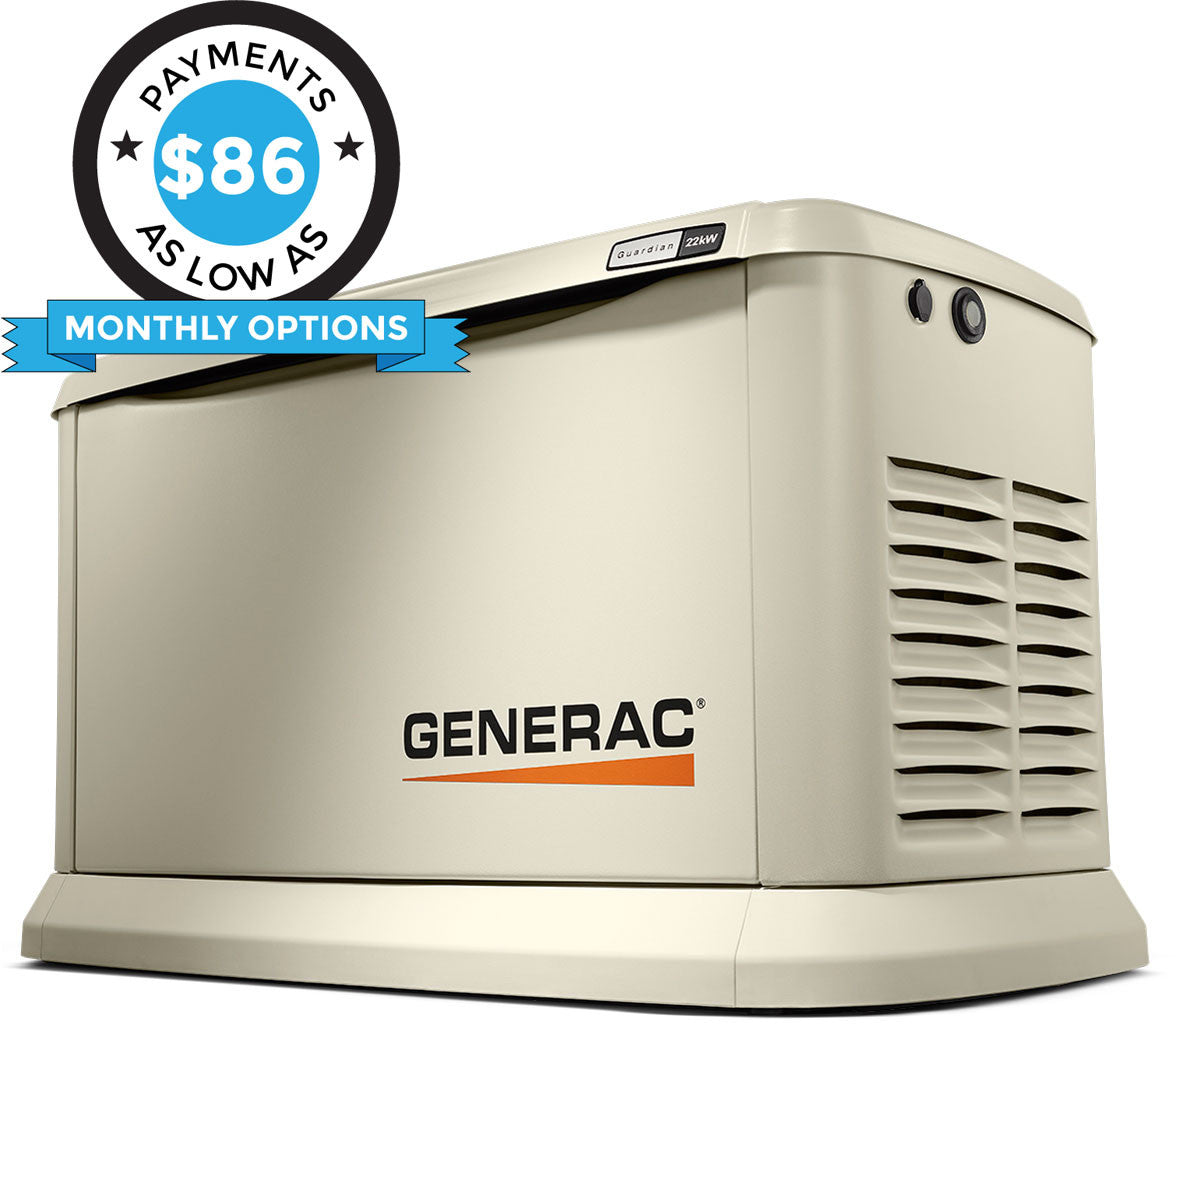 Generac 22kw installation guide